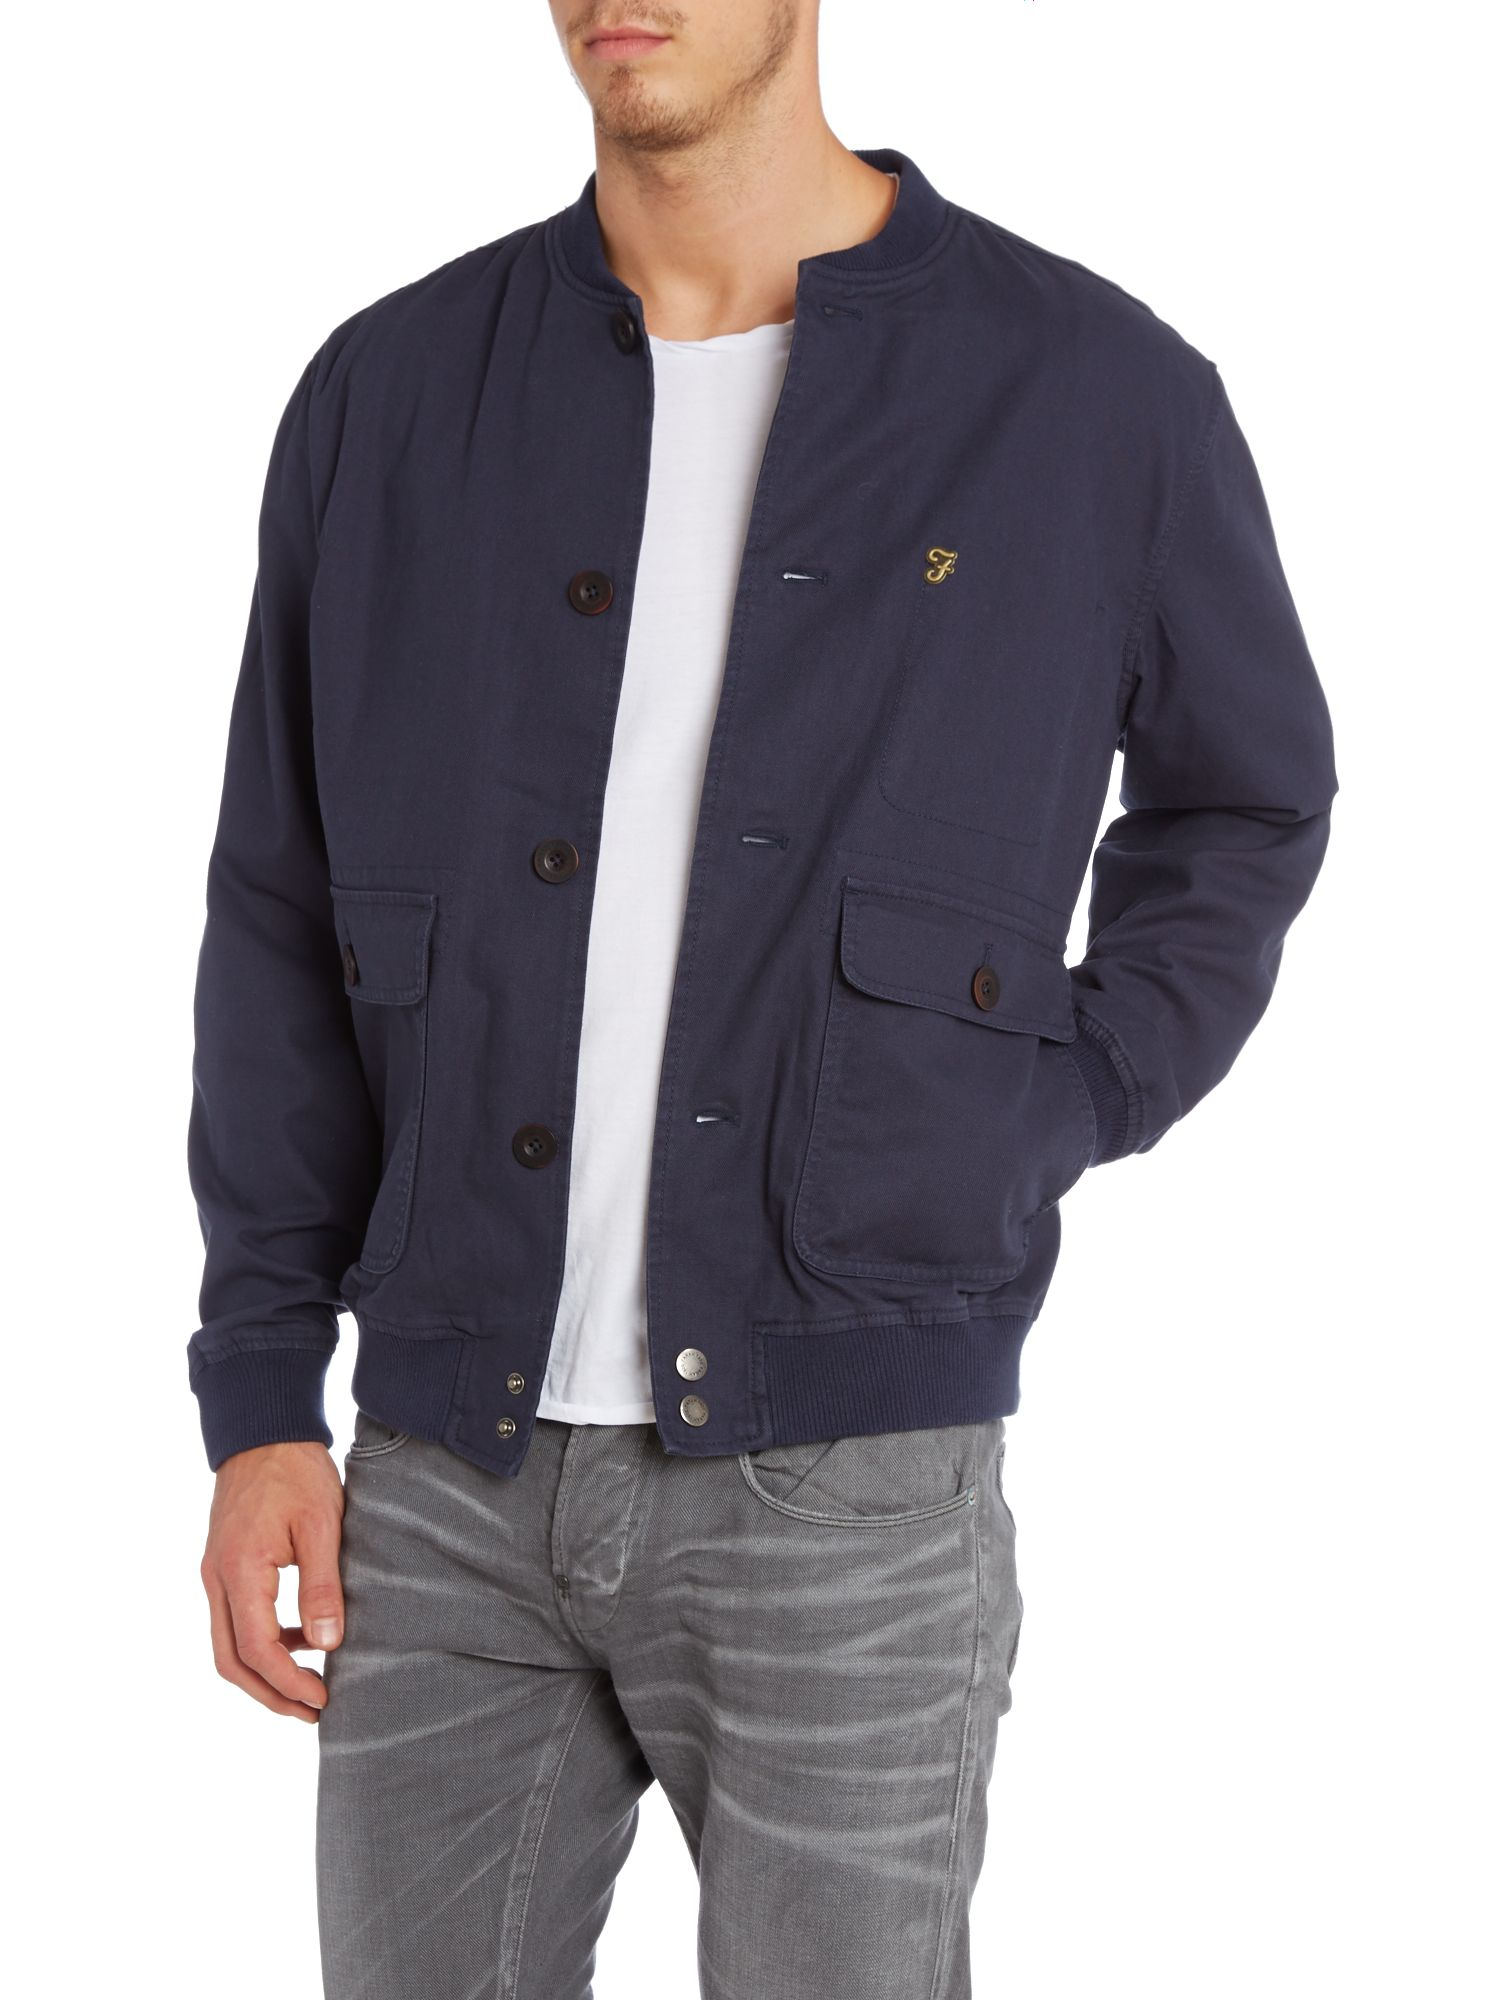 Baxtor three pocket bomber jacket